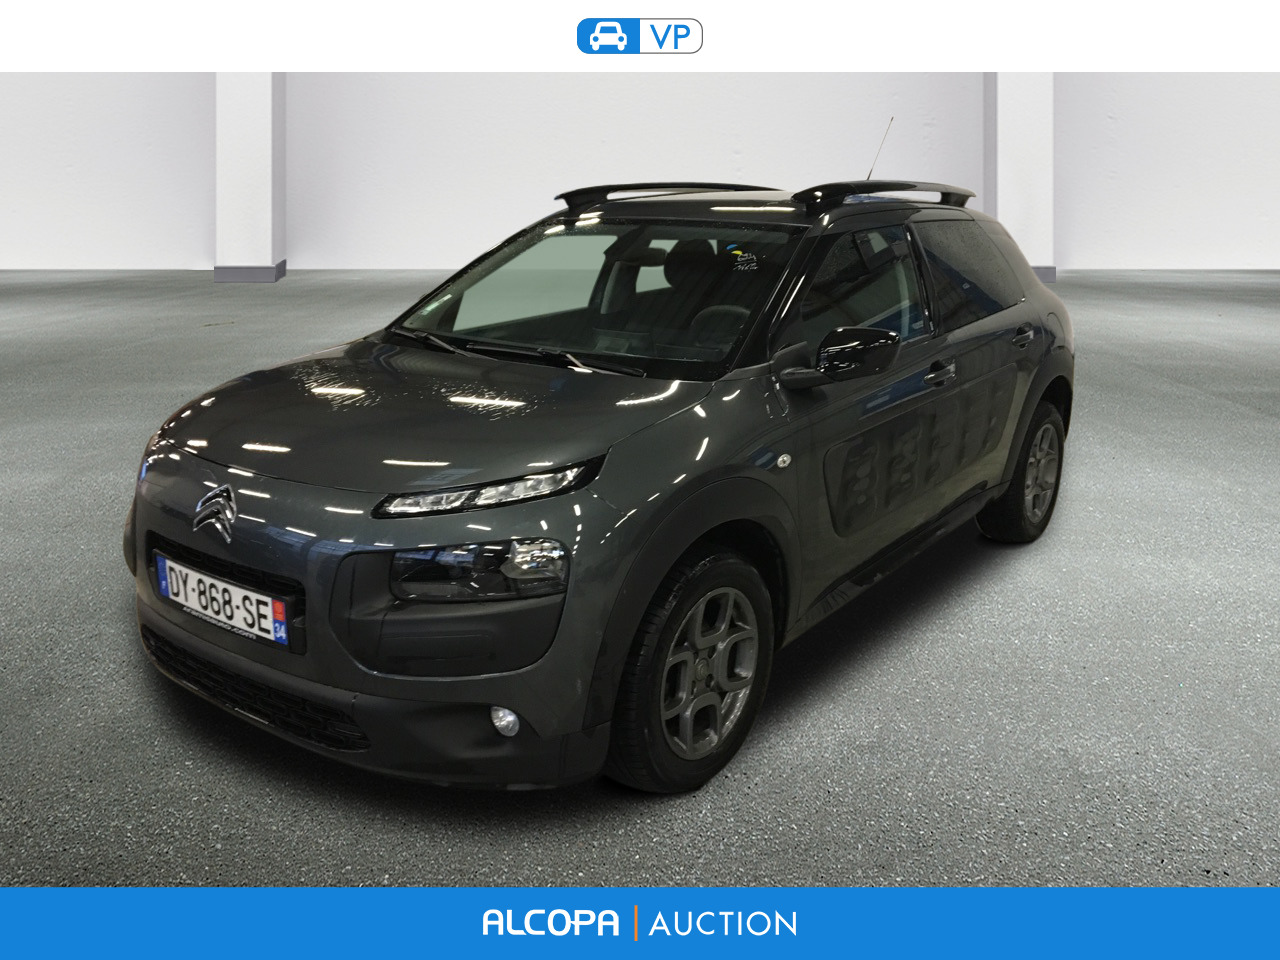 citroen c4 c4 cactus bluehdi 100 shine alcopa auction. Black Bedroom Furniture Sets. Home Design Ideas